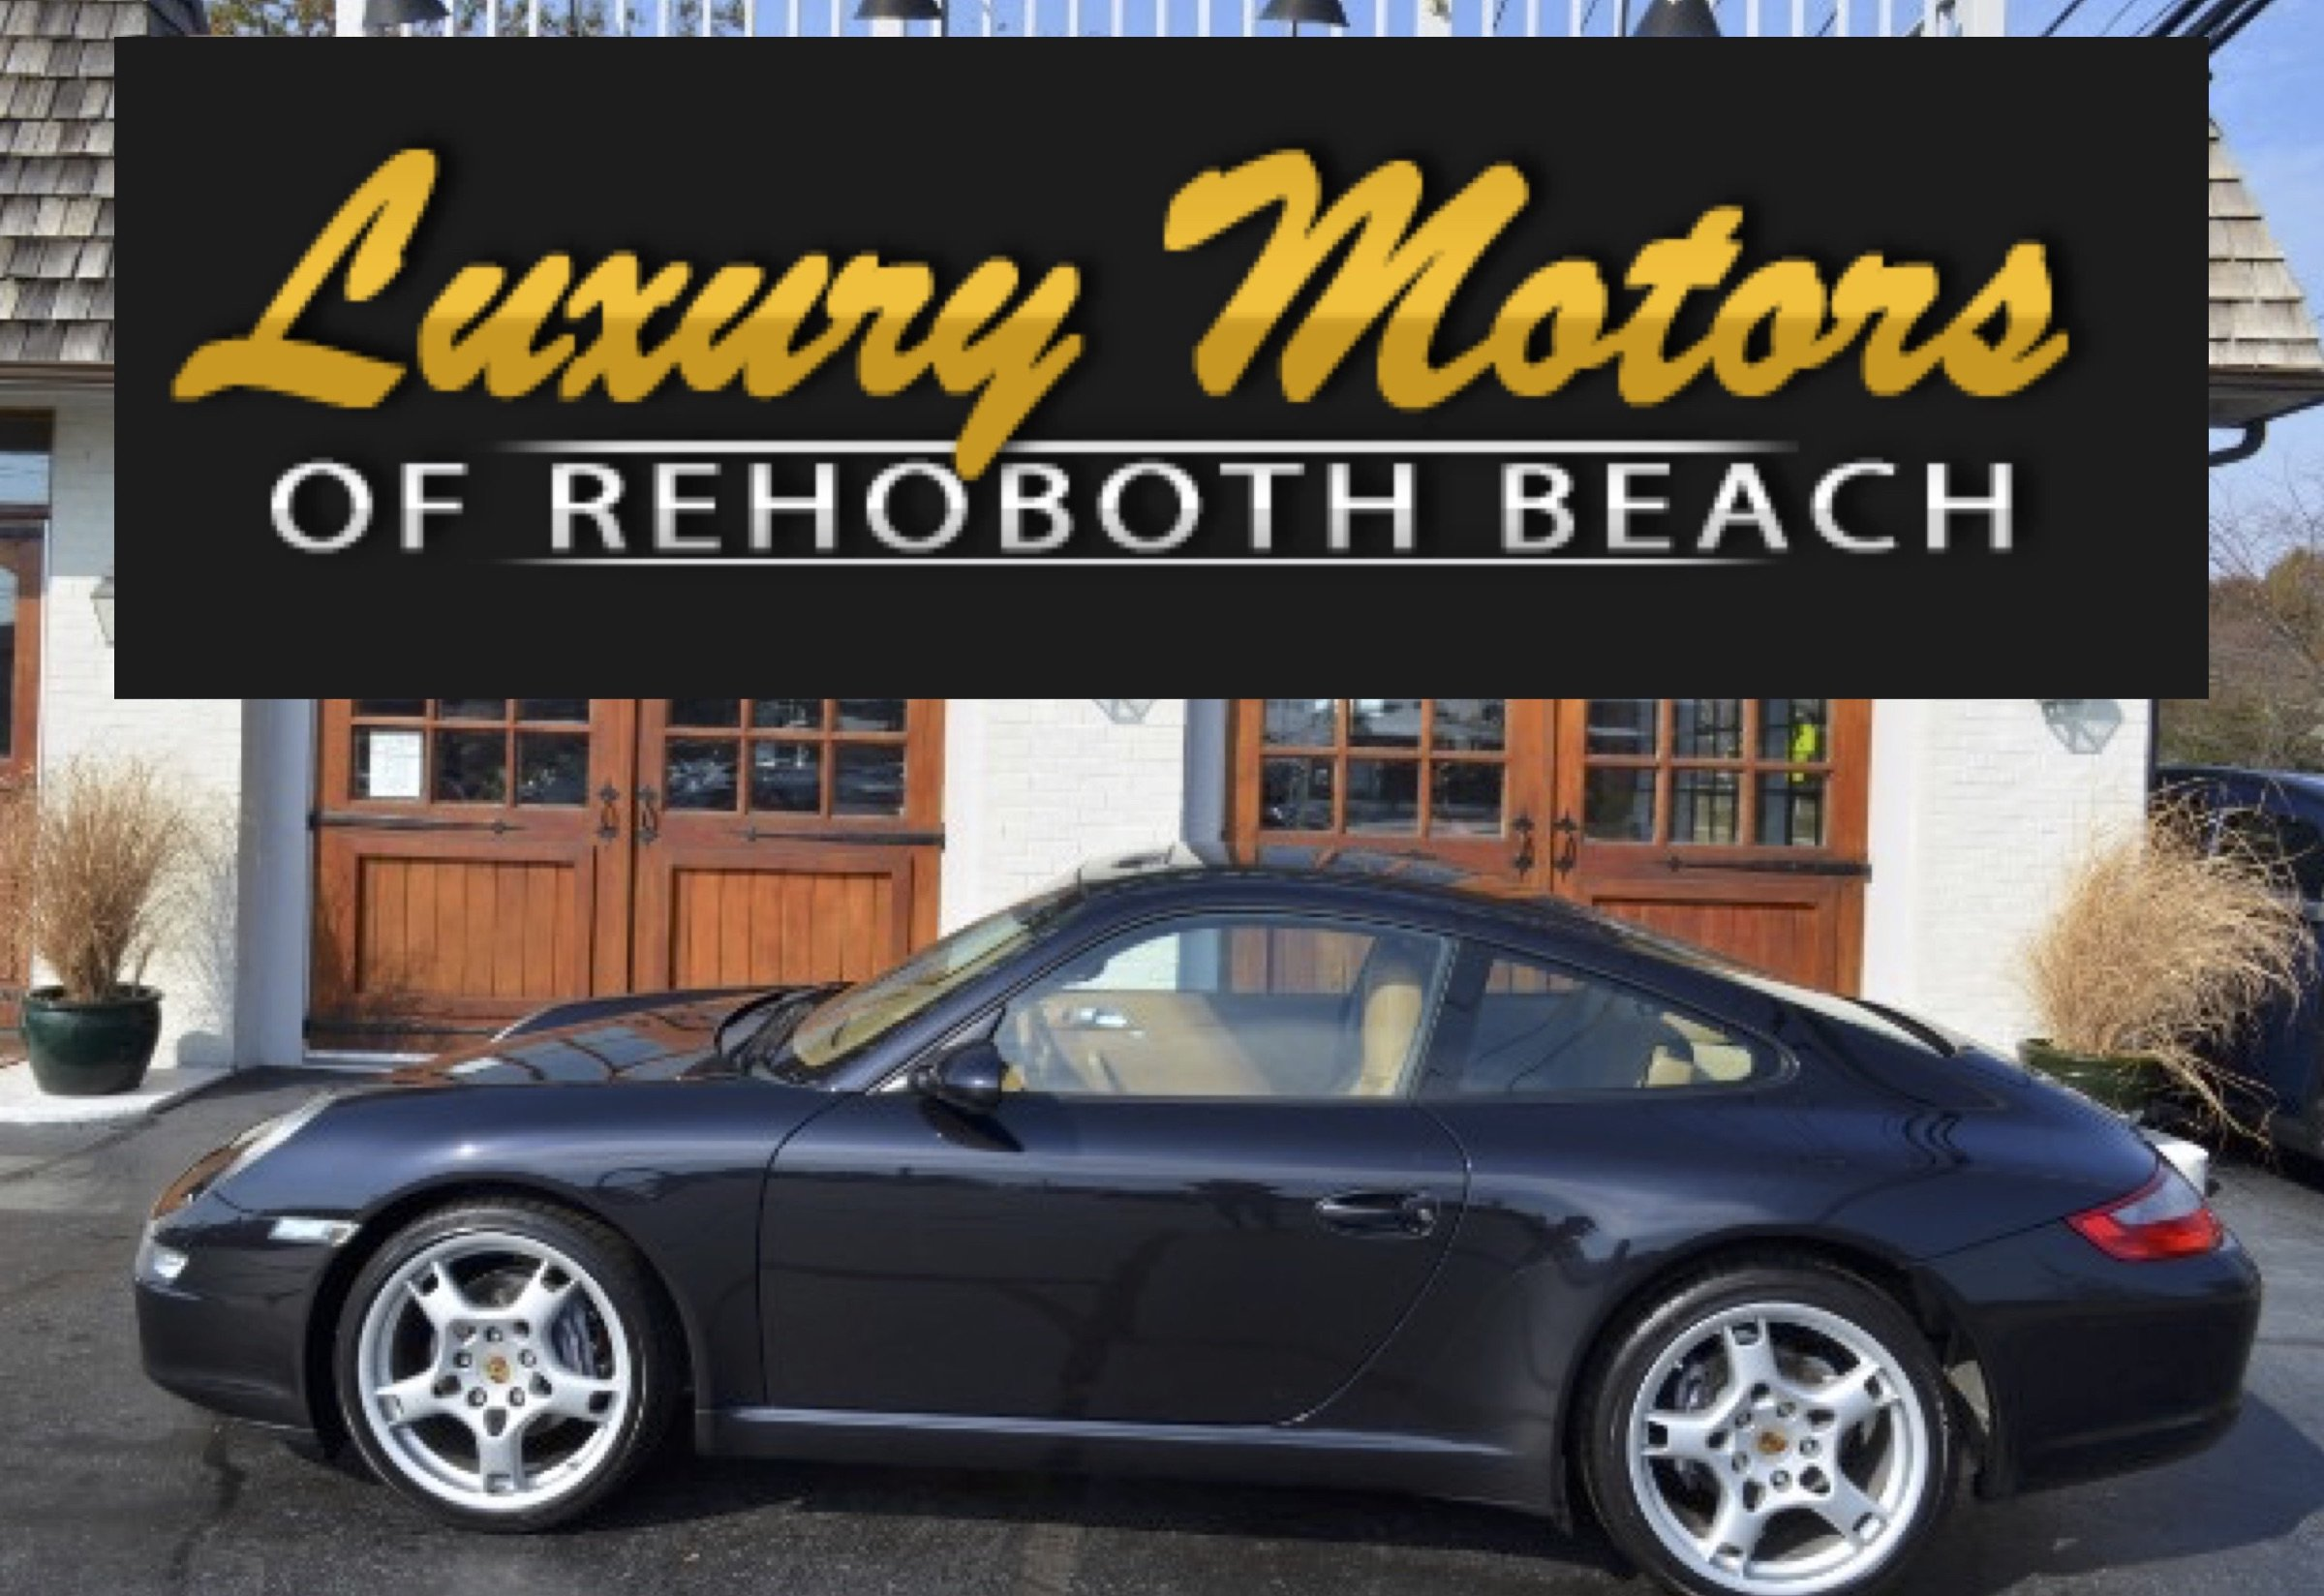 Luxury Motors of Rehoboth